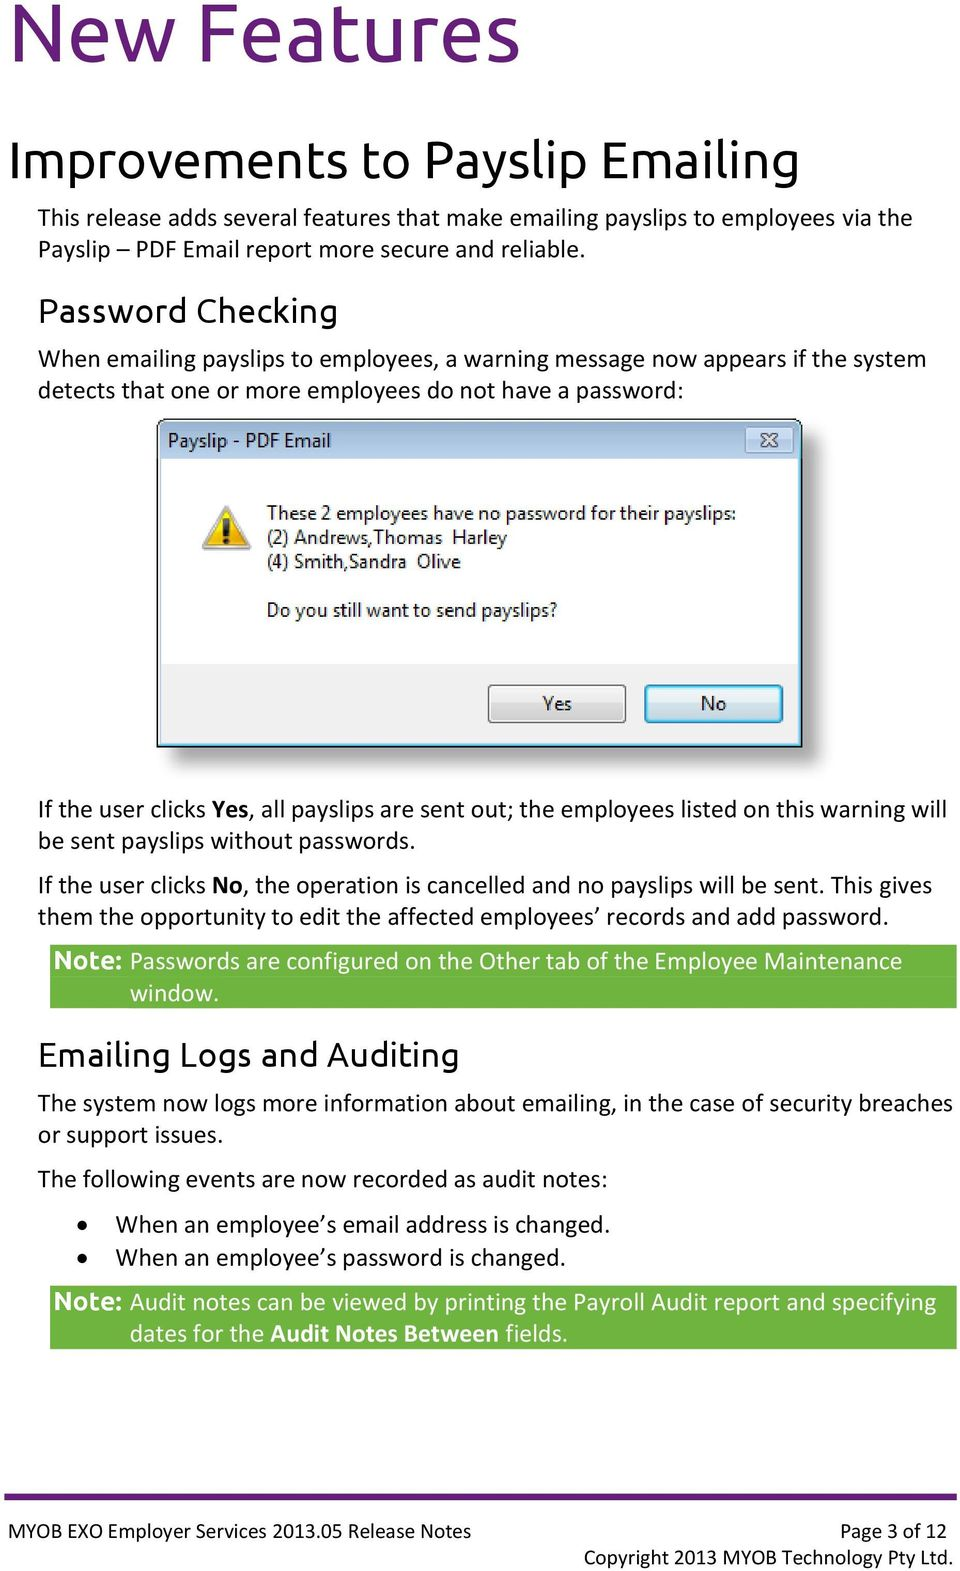 sent out; the employees listed on this warning will be sent payslips without passwords. If the user clicks No, the operation is cancelled and no payslips will be sent.